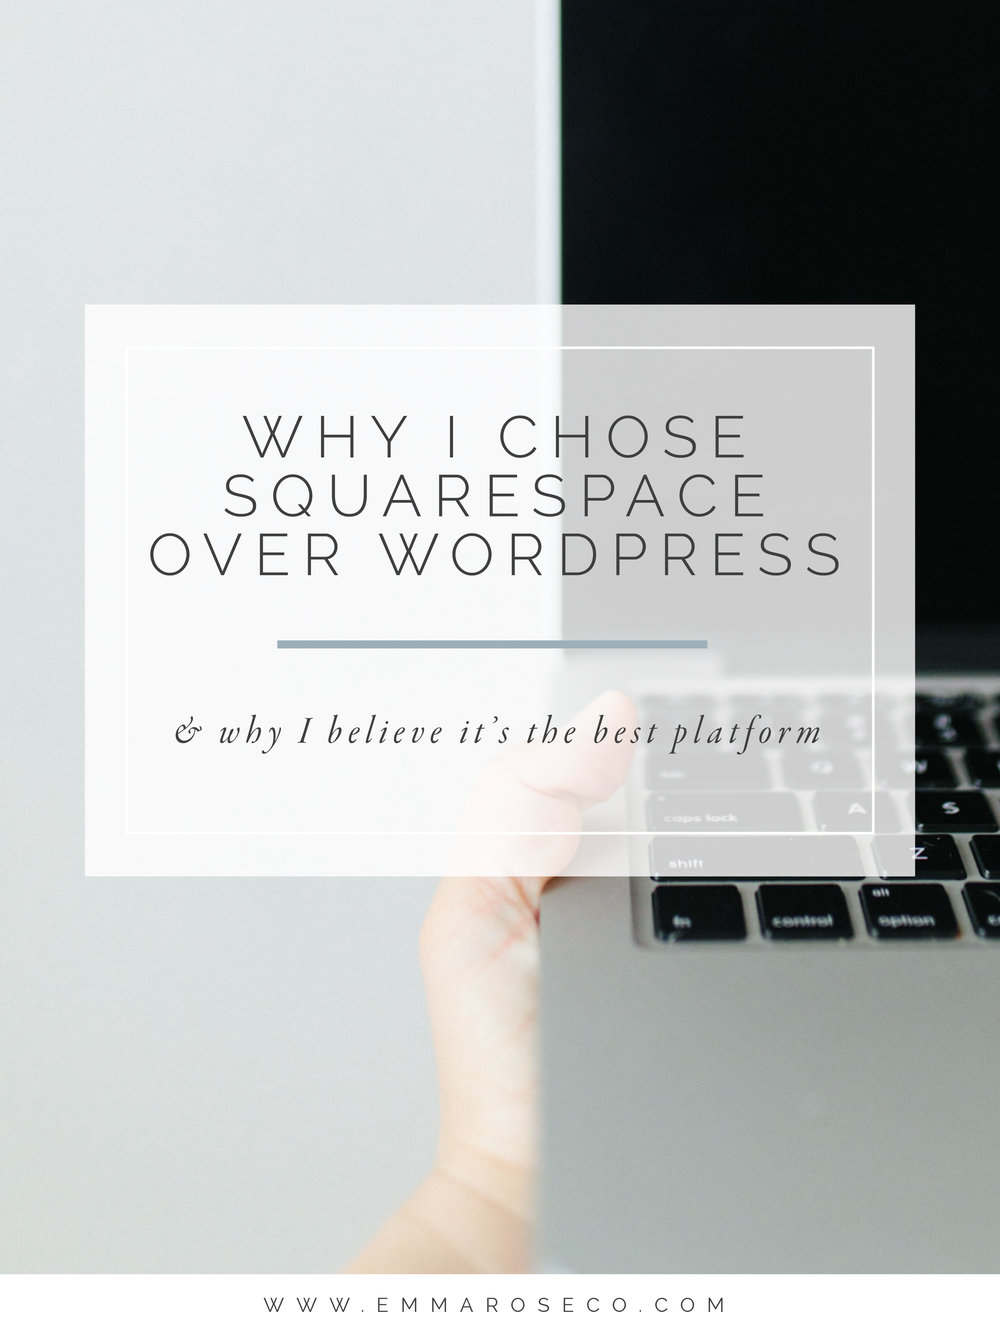 Why I Chose Squarespace Over Wordpress And Why I Believe It's The Best Platform